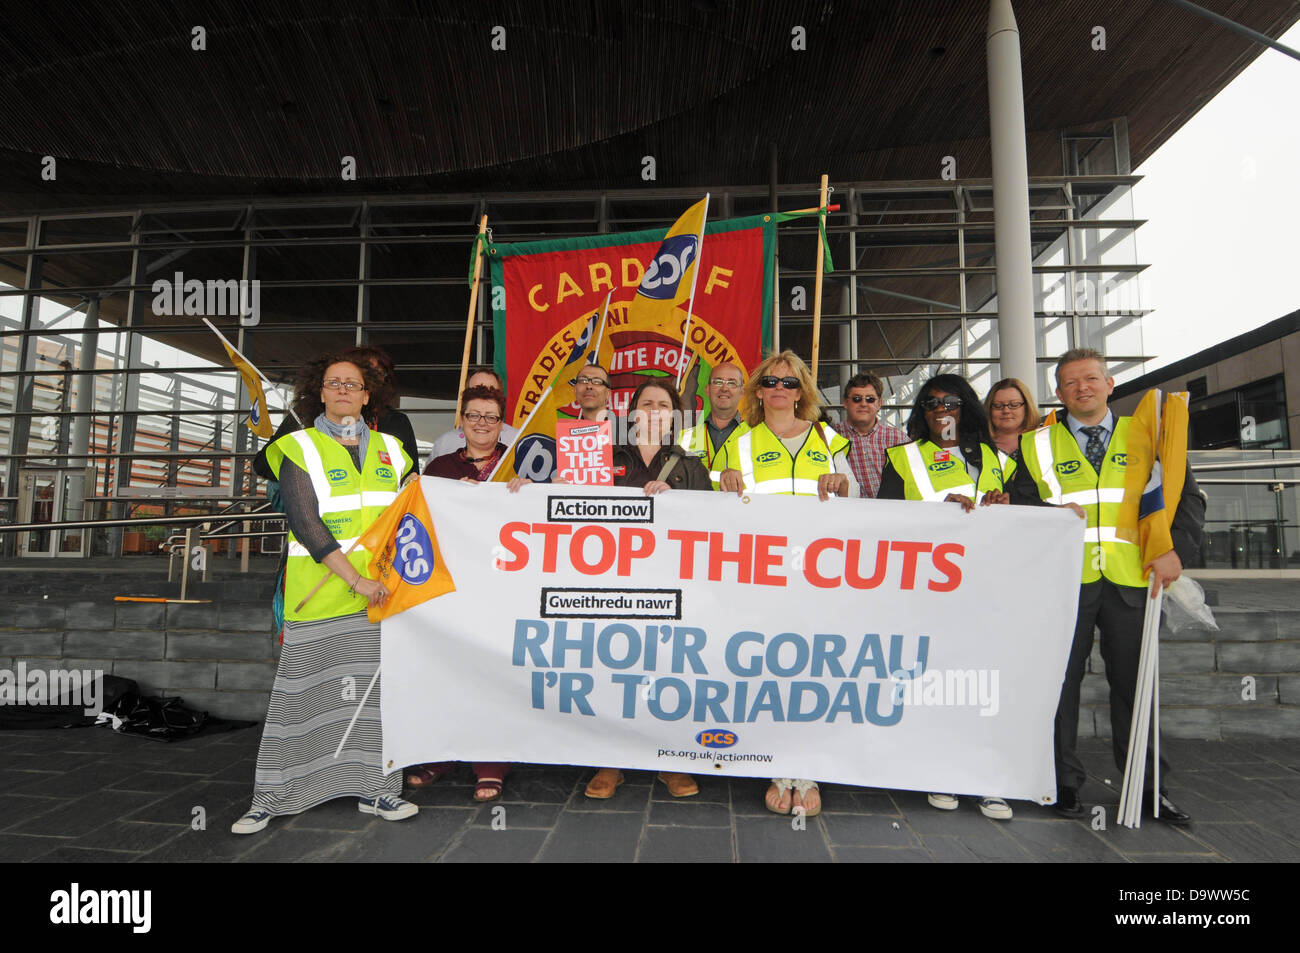 Cardiff - UK - 27th June 2013 - Members of the PCS Union protesting against the Government cuts outside the Senydd - Stock Image